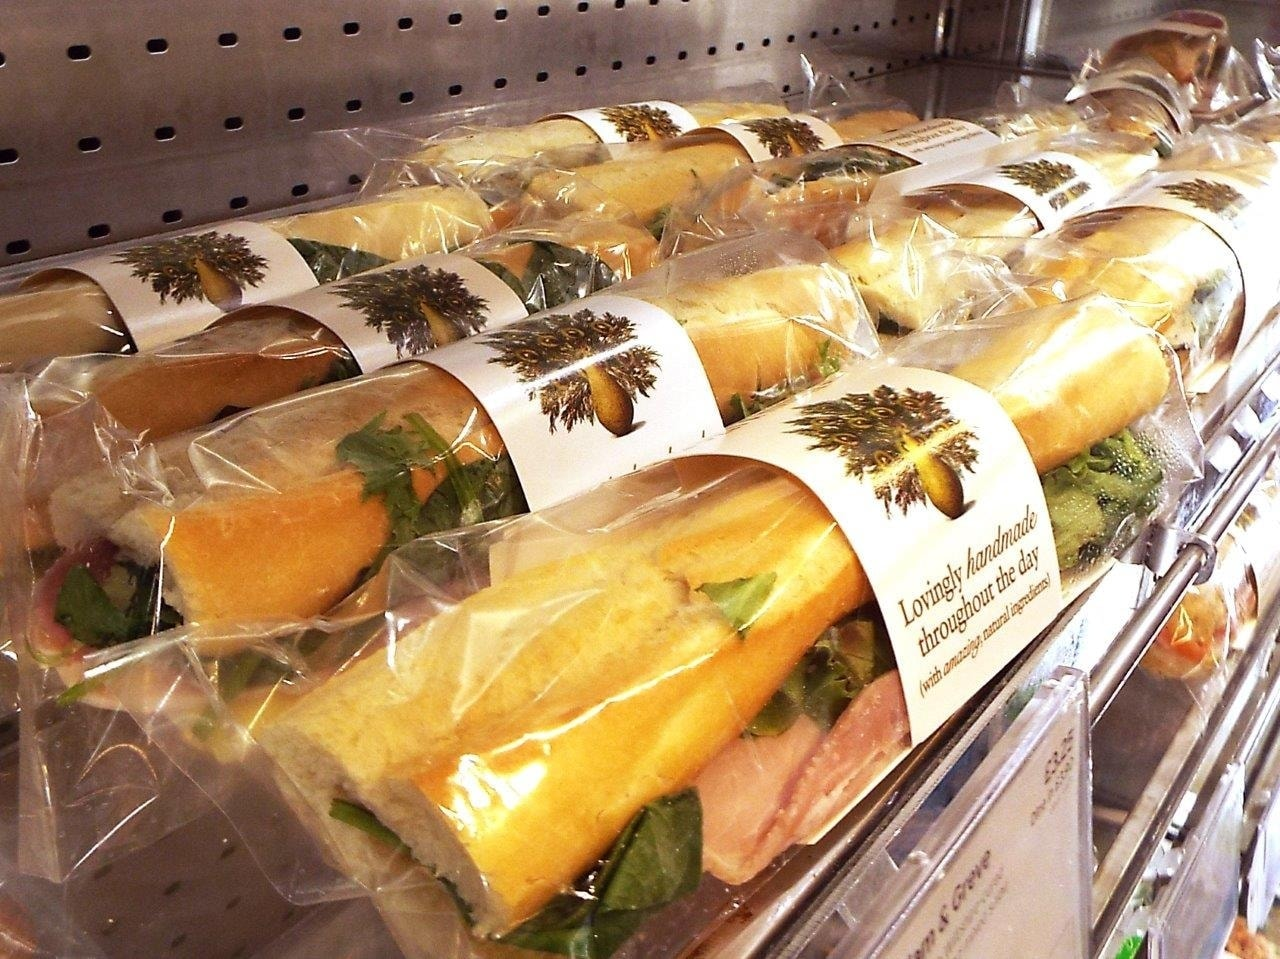 Monday Pret. Do not request at this post please. Various sandwiches, wraps, baguettes and salad.